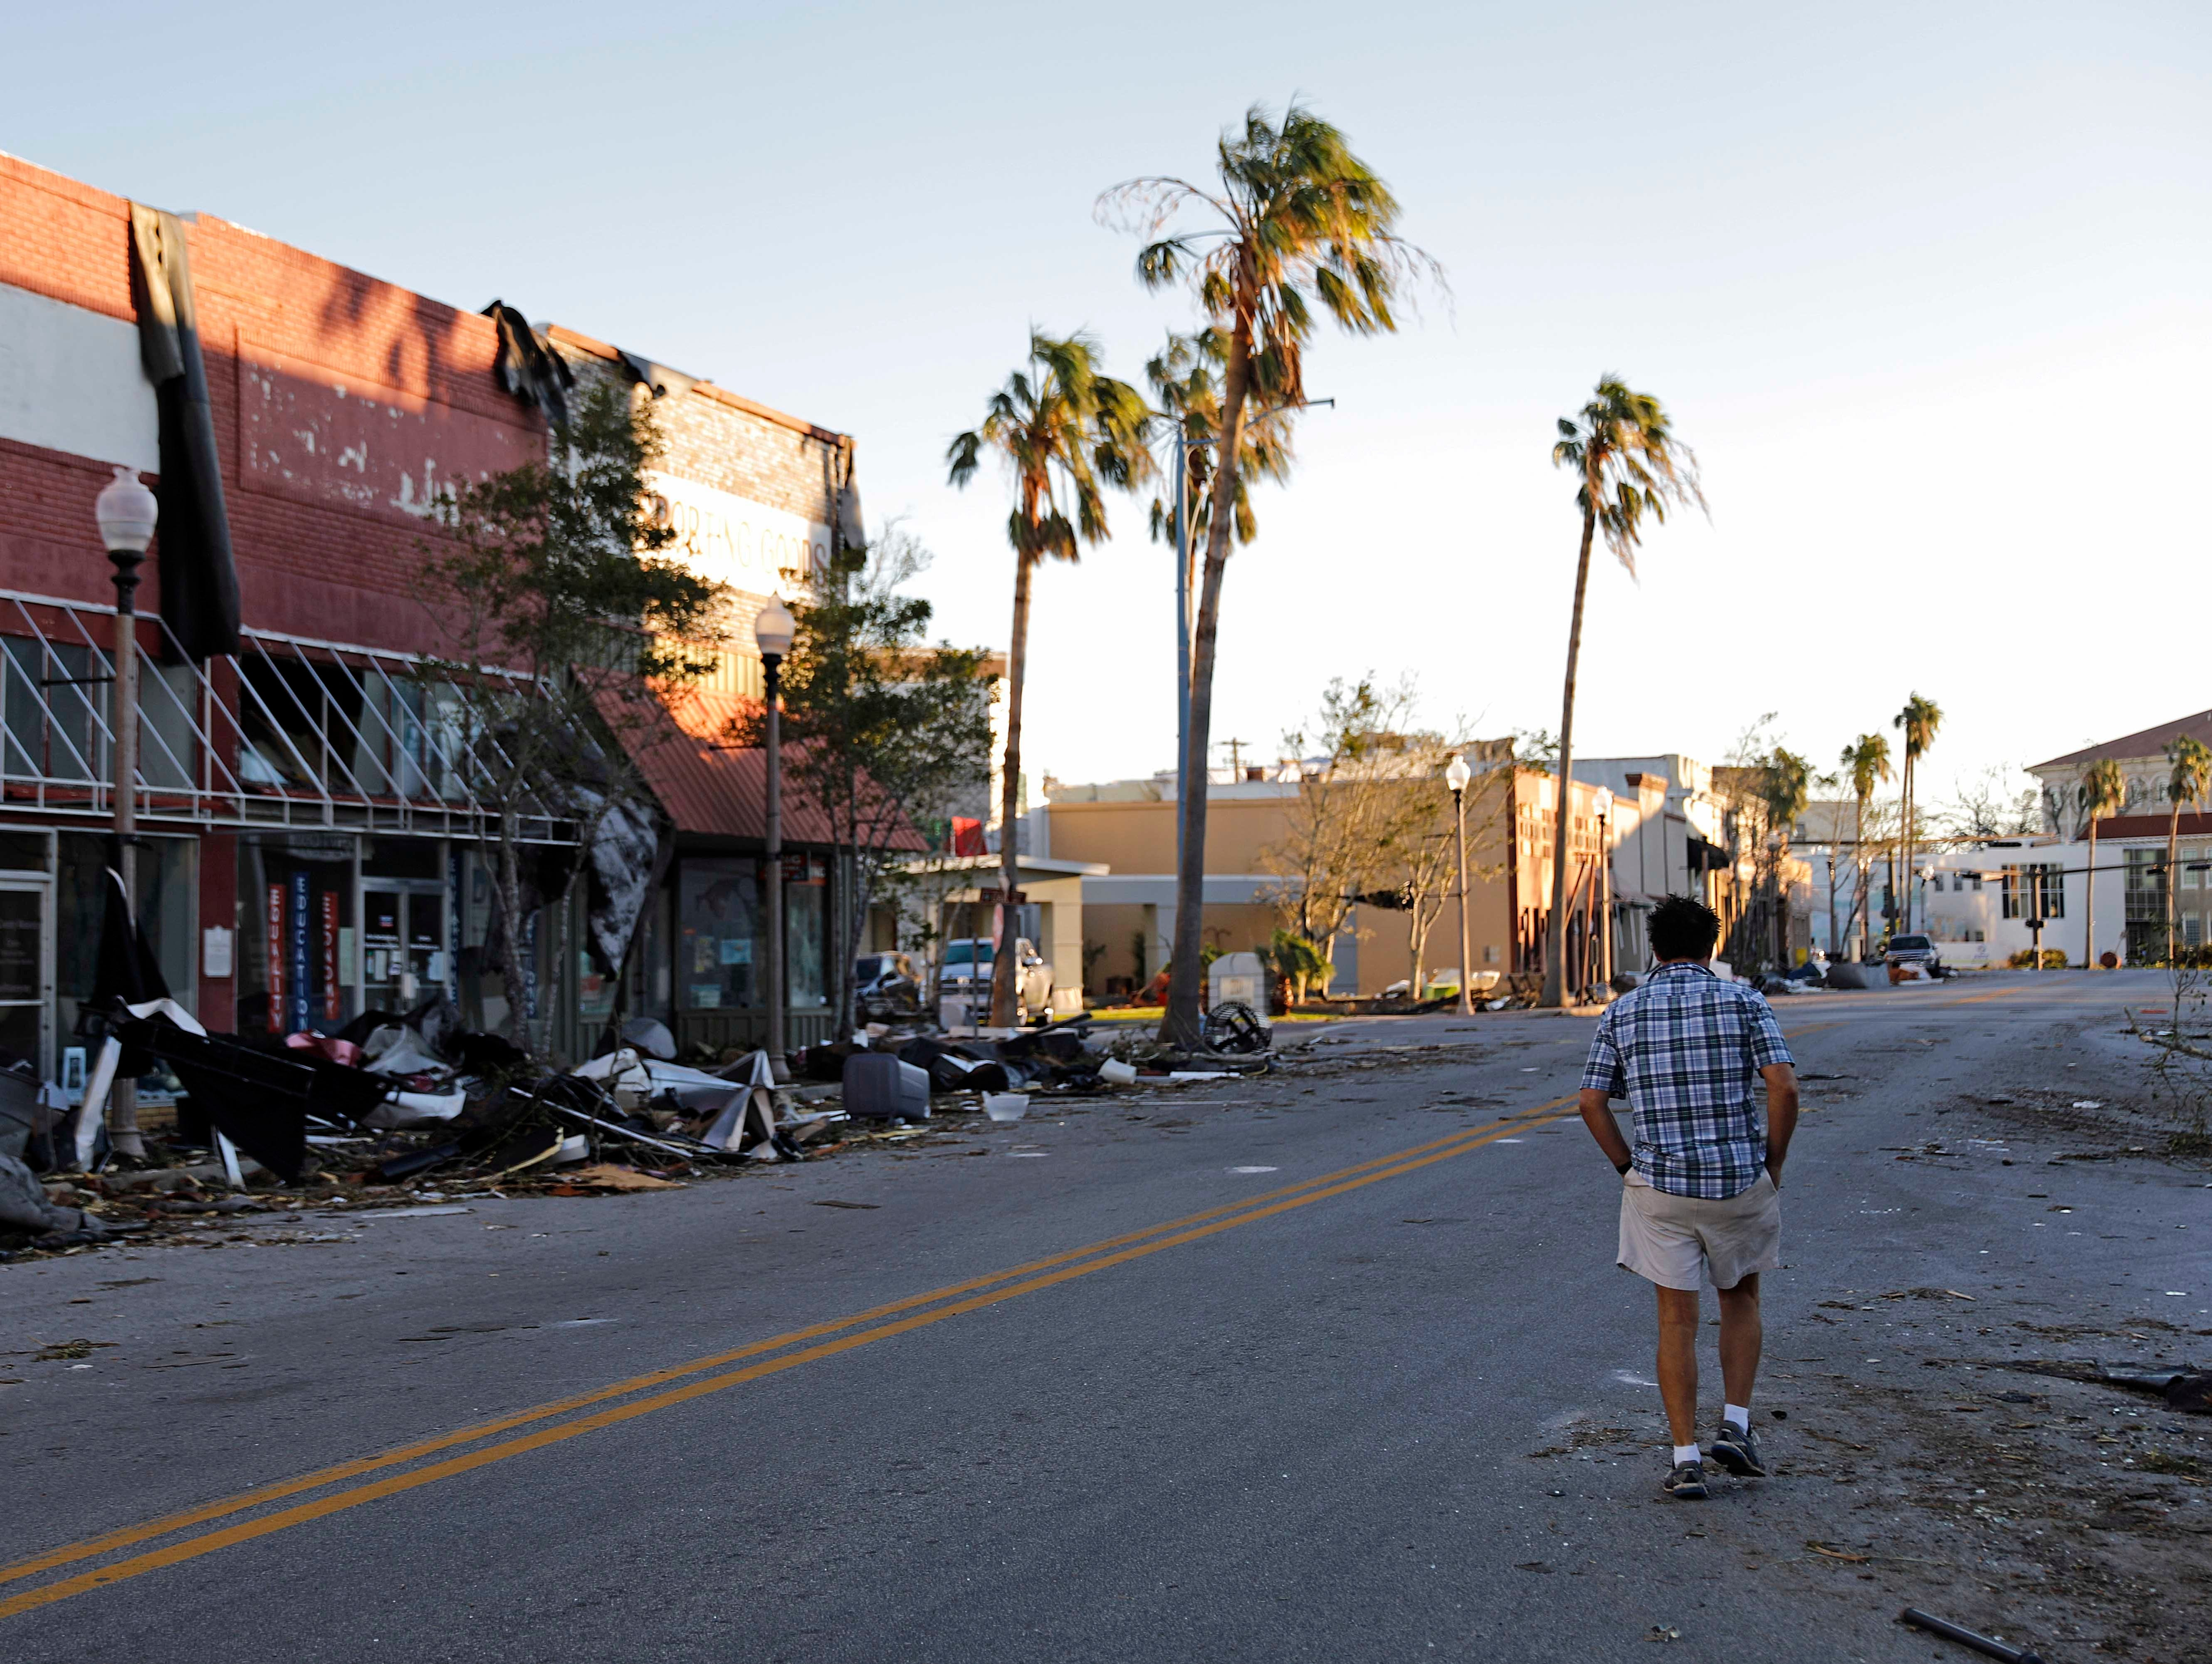 A man walks through the damaged historical downtown district in the aftermath of Hurricane Michael in Panama City, Fla., Friday, Oct. 12, 2018.